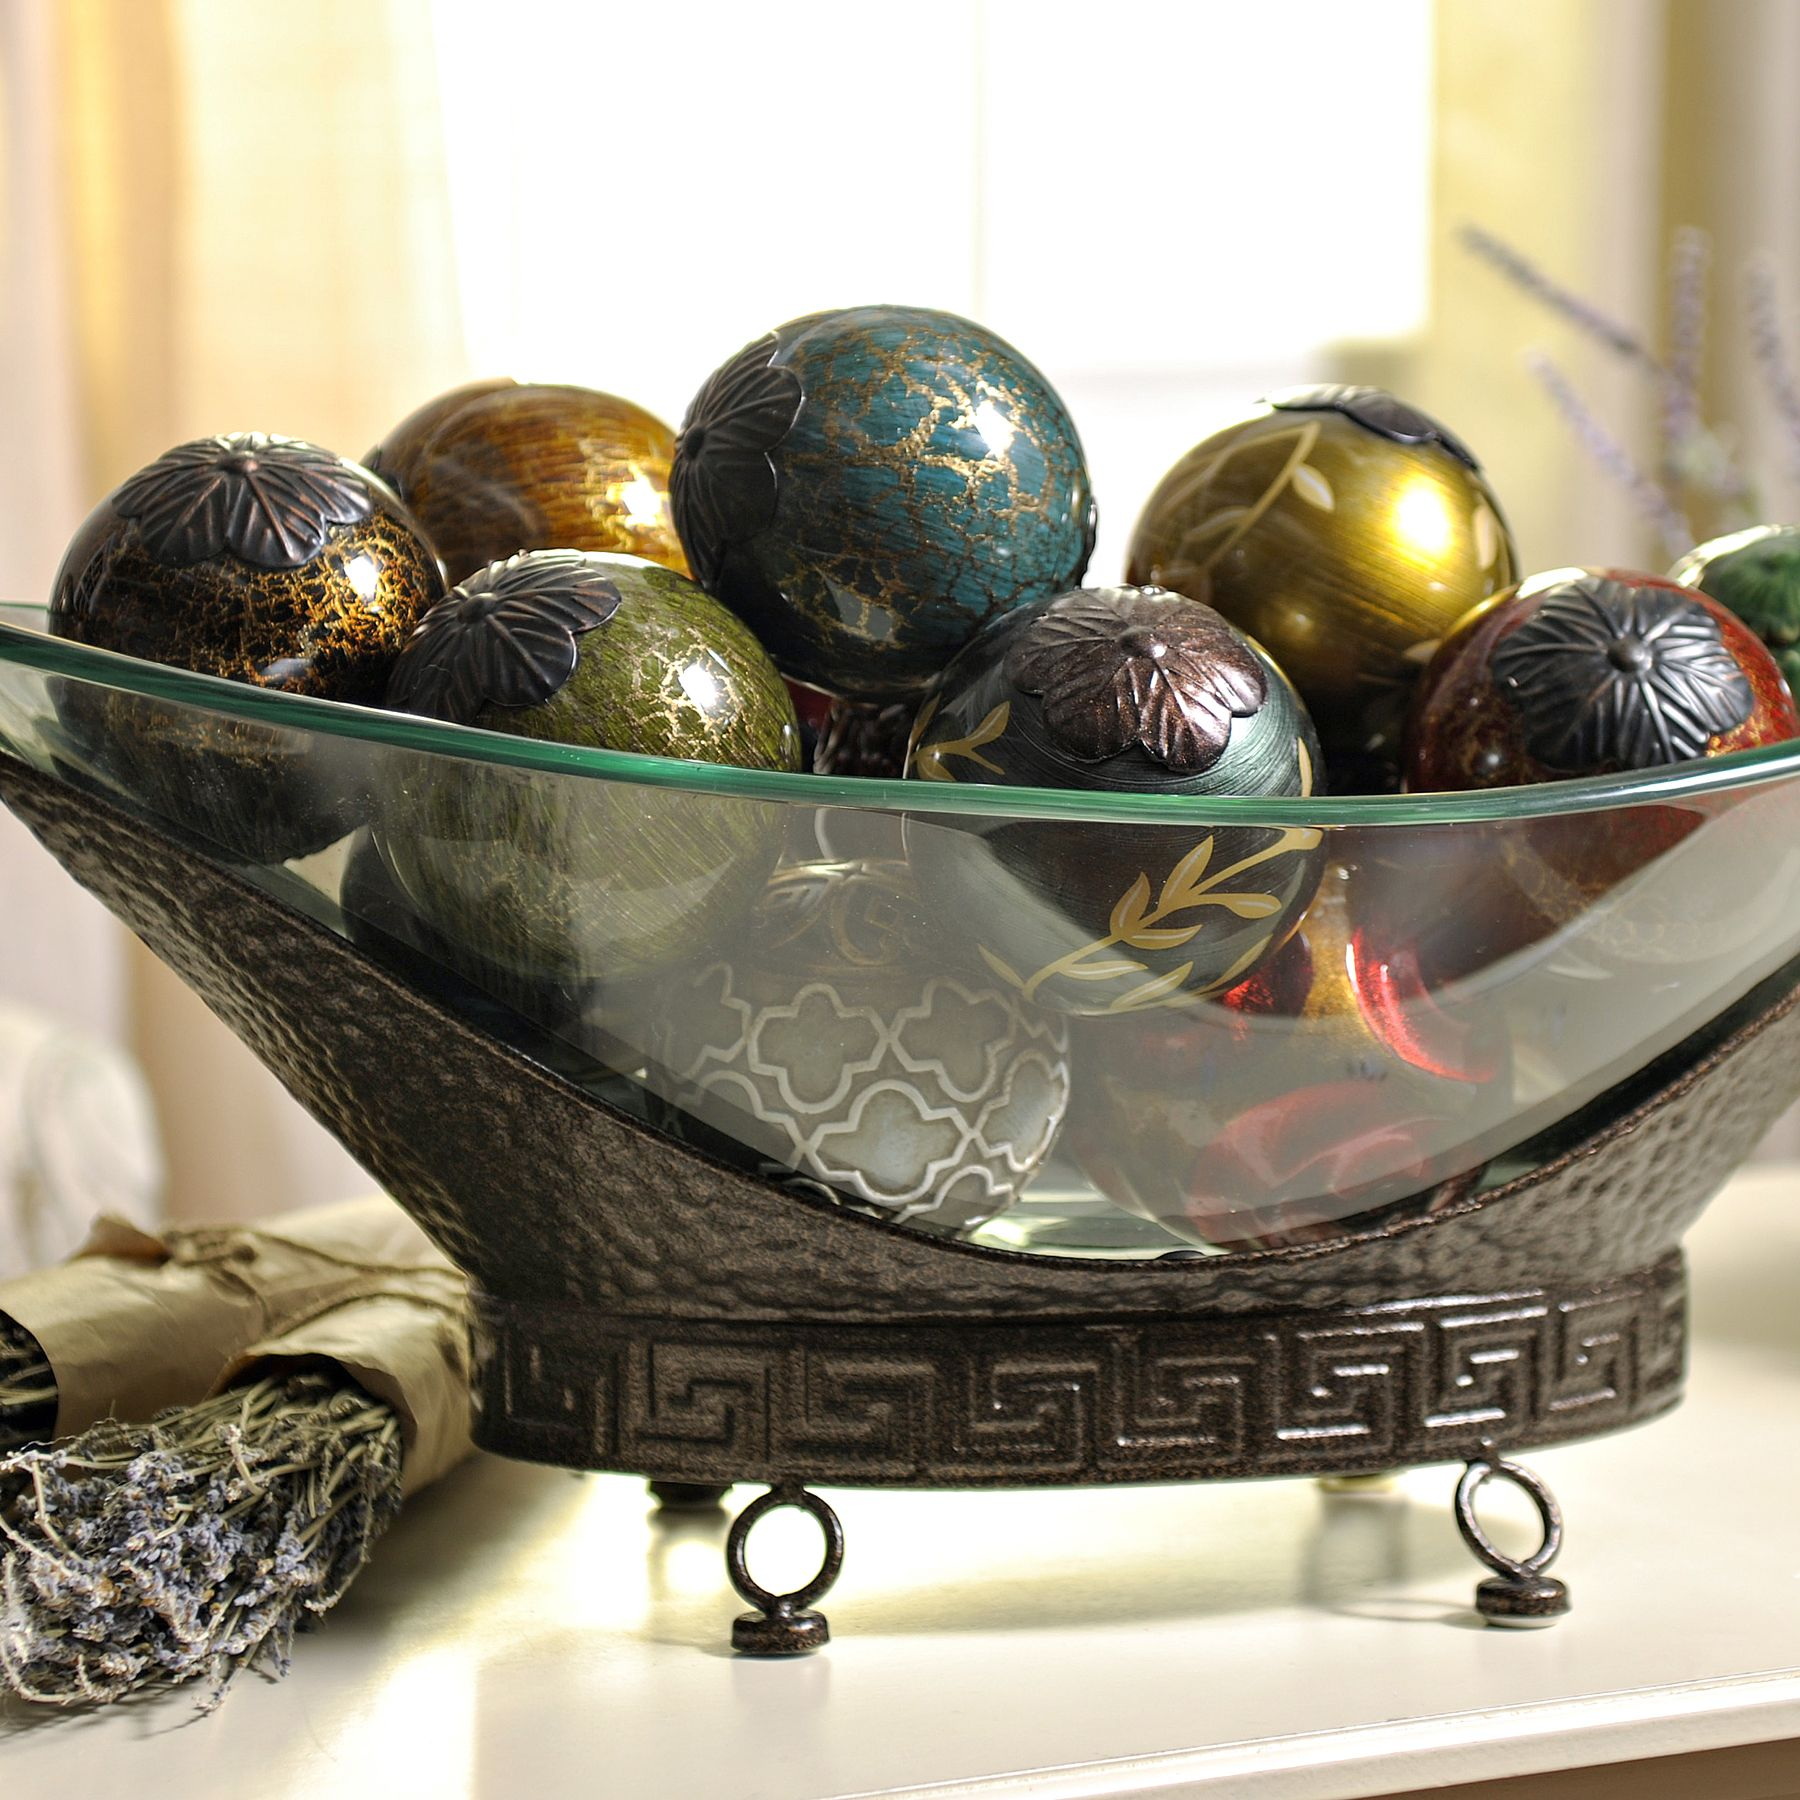 Metal Centerpiece Bowl Oversized Bronze Bowl Decorative Items Bowls And Display